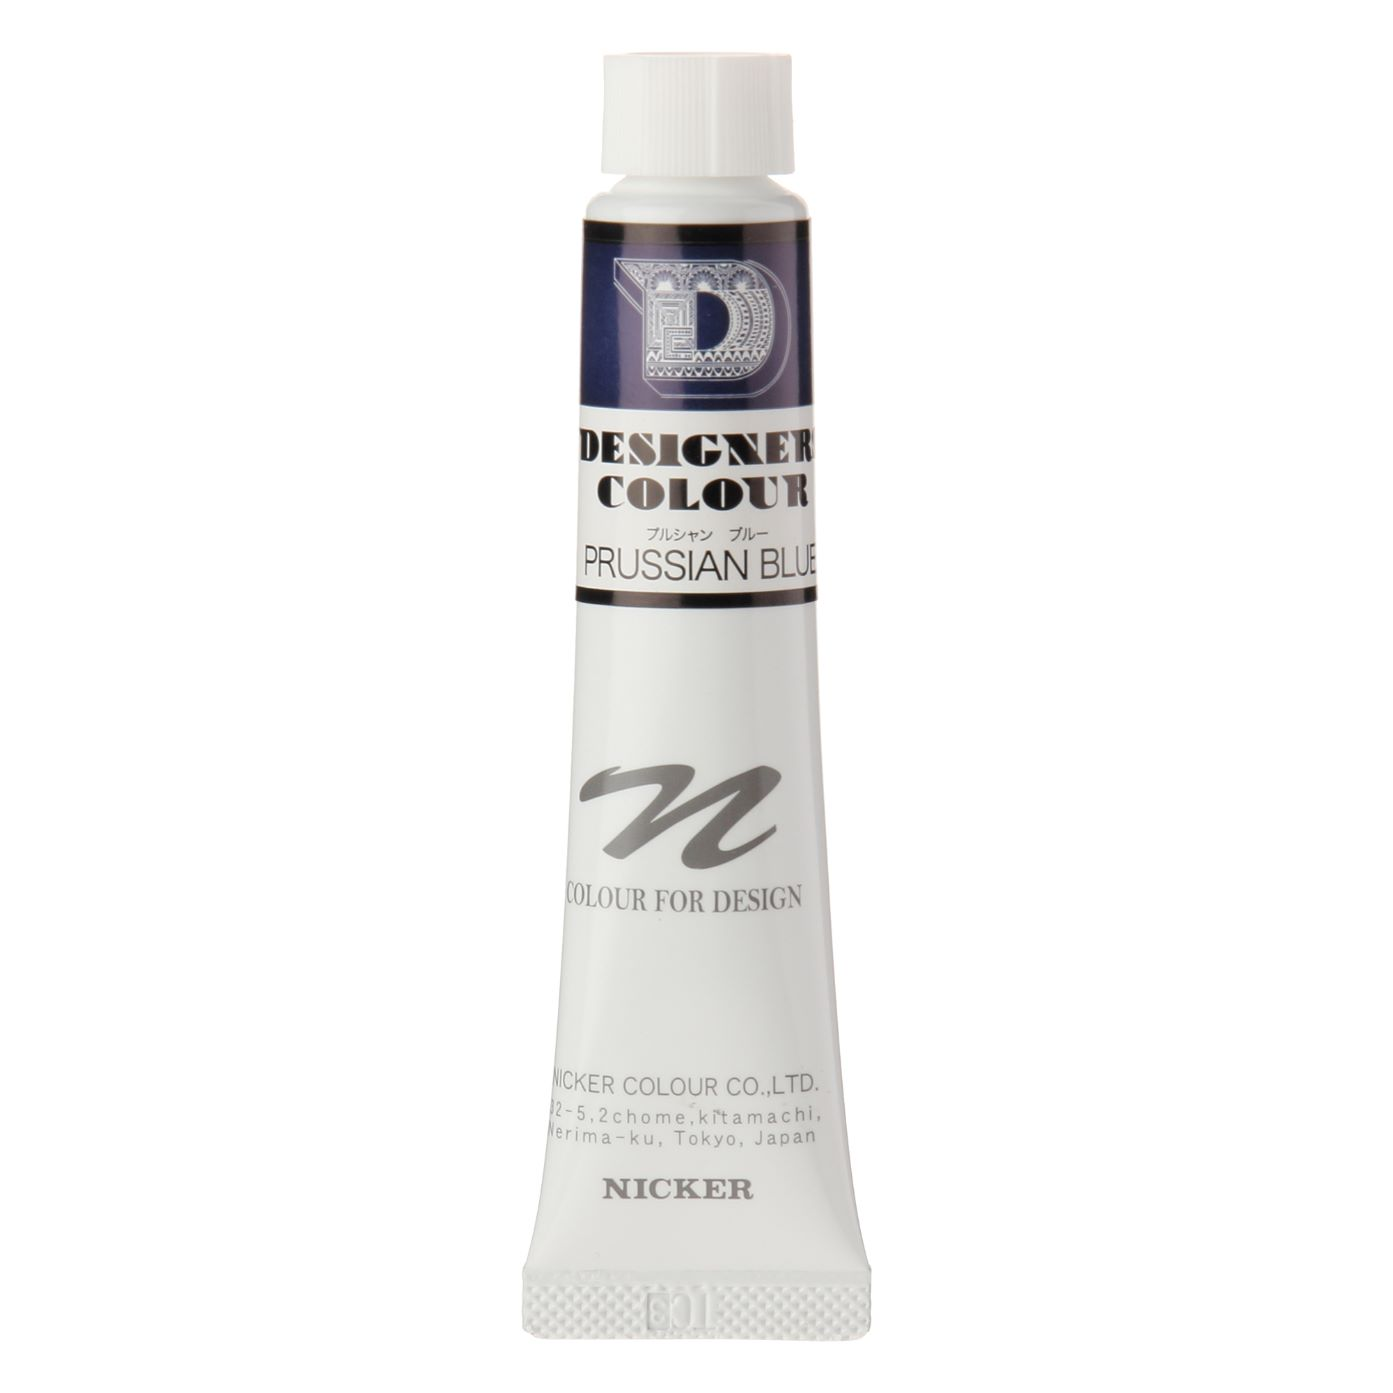 DESIGNERS COLOUR 20ml 535 PRUSSIAN BLUE